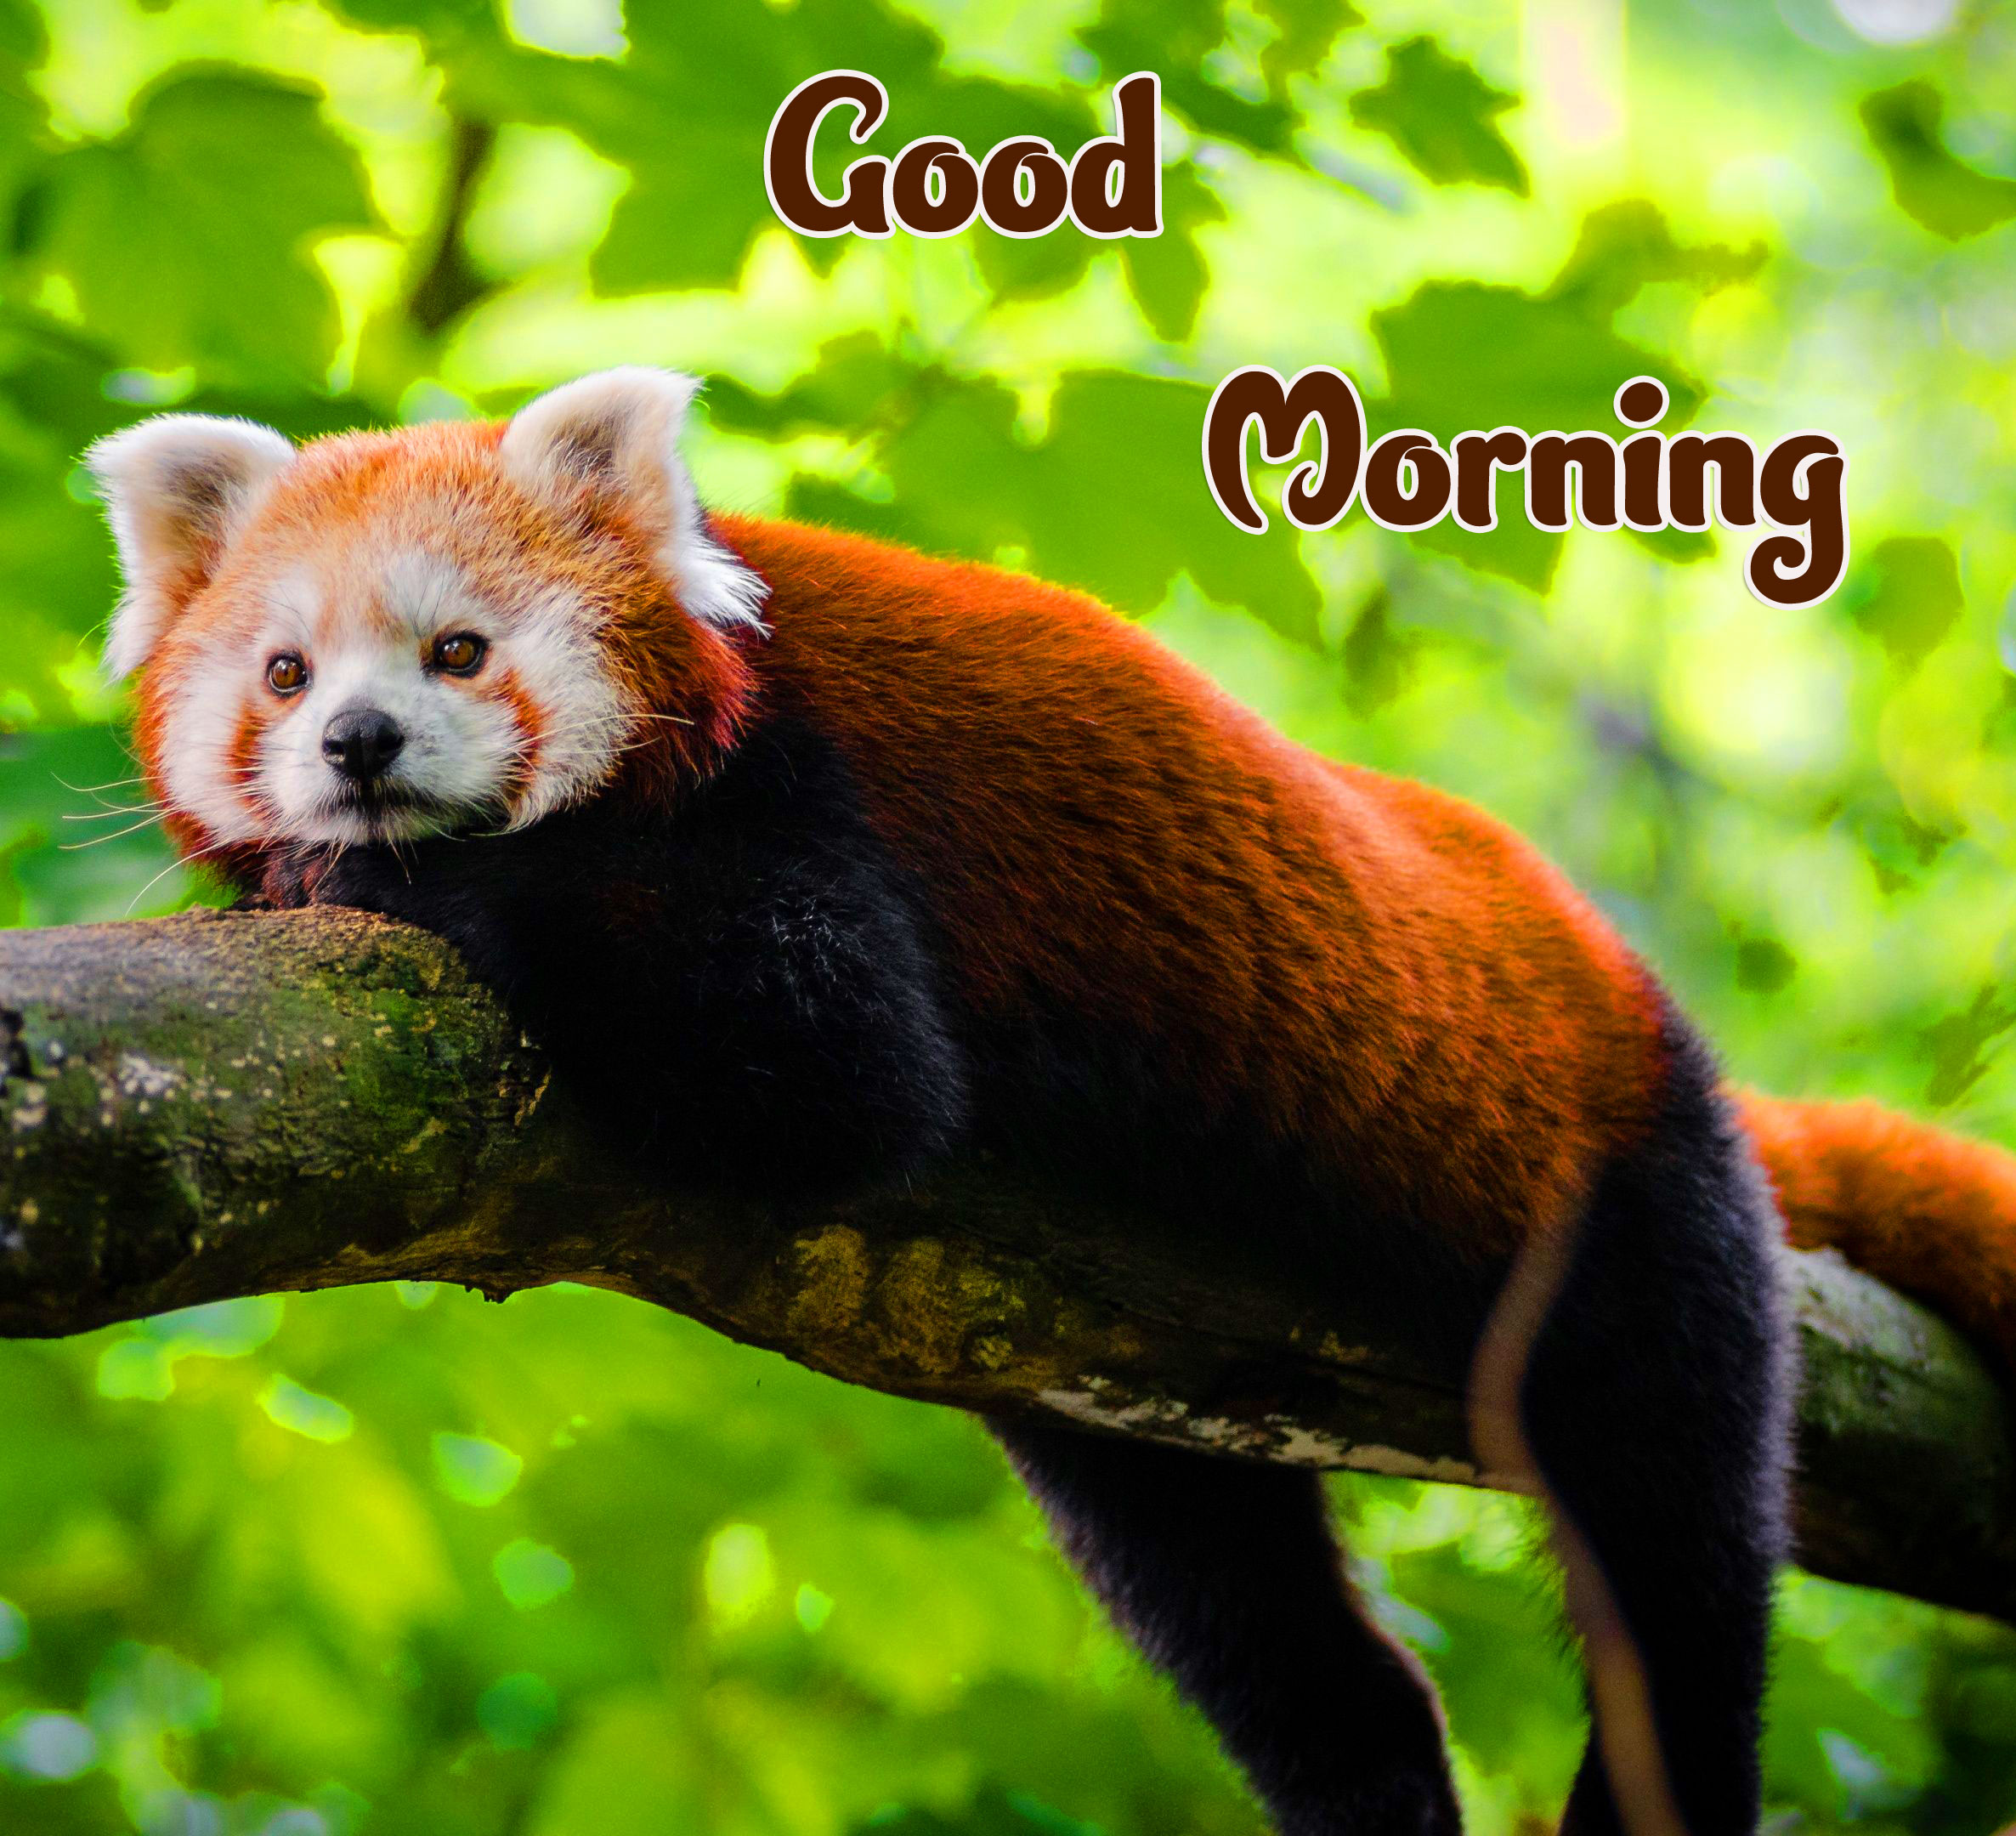 Animal Good morning Wishes photo Free Download